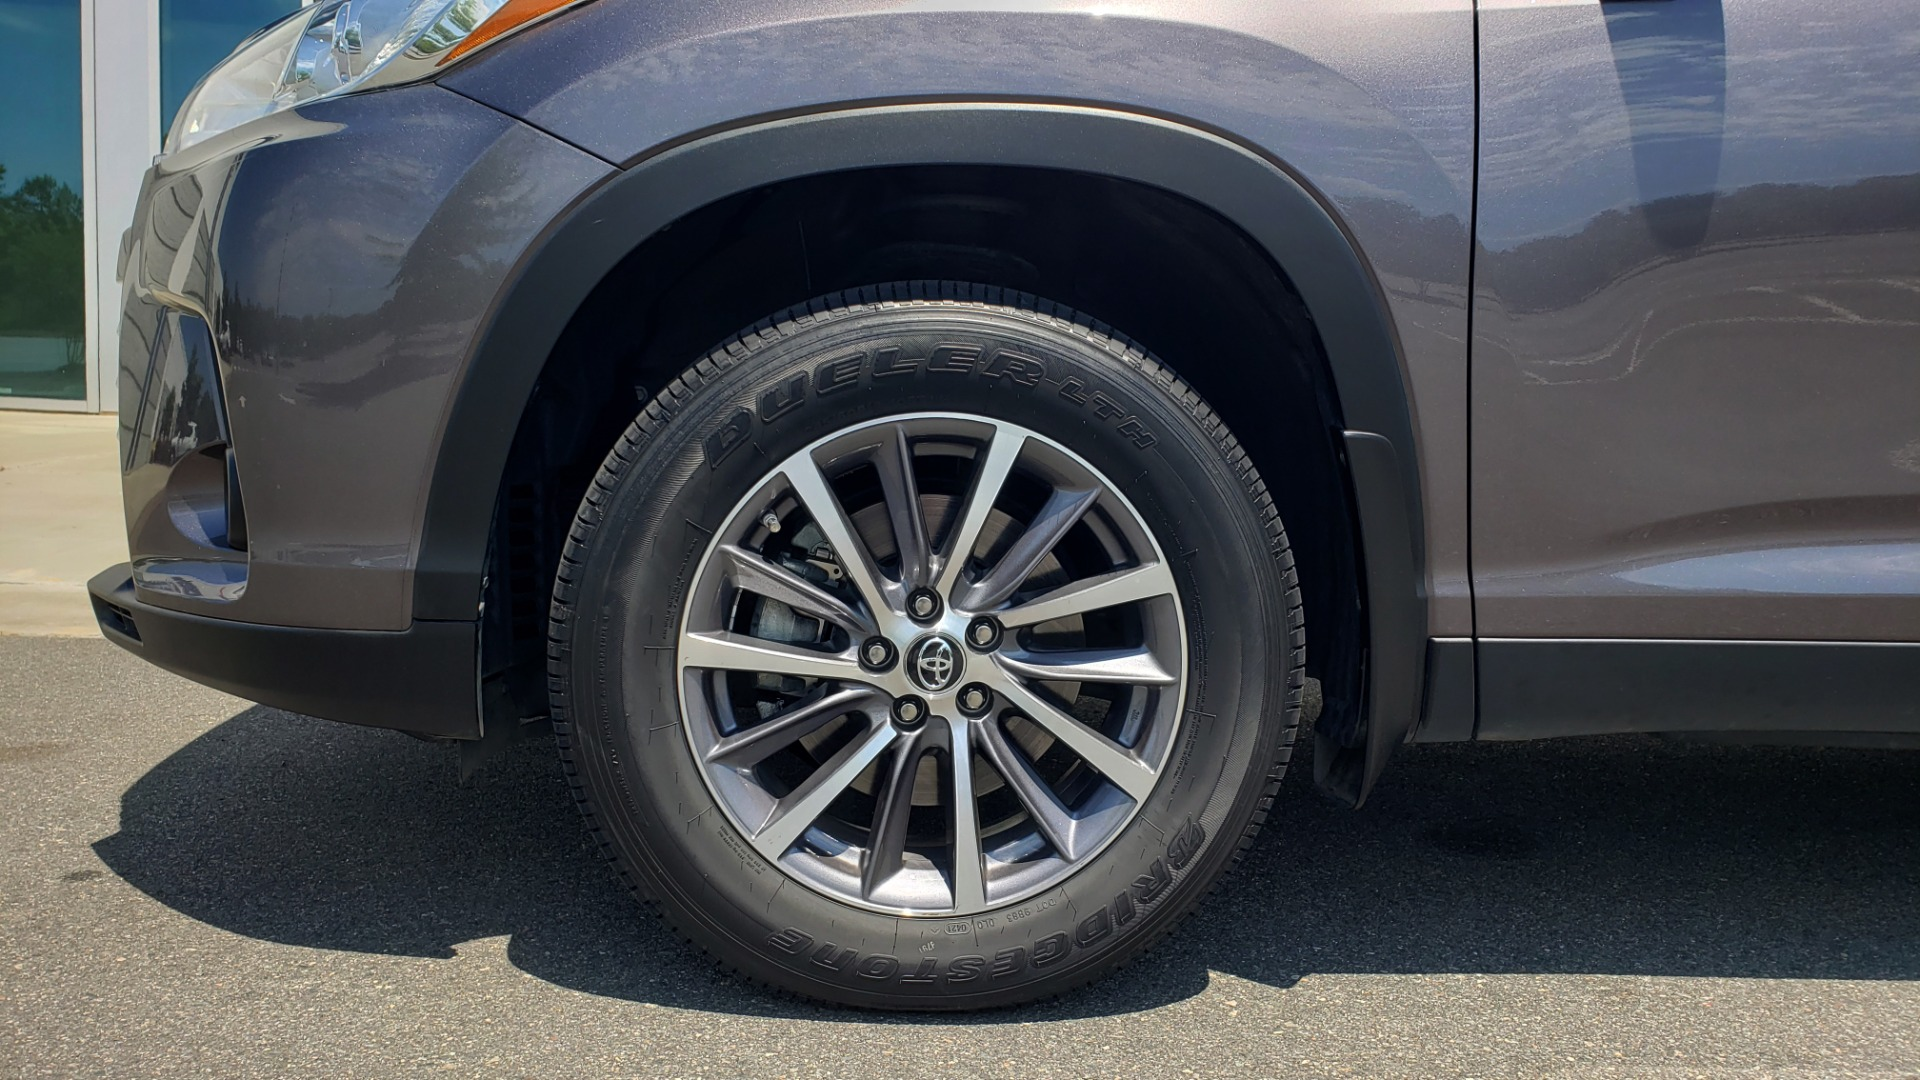 Used 2019 Toyota HIGHLANDER XLE / 3.5L V6 / AWD / LEATHER / 8-SPD AUTO / 1-OWNER for sale $37,500 at Formula Imports in Charlotte NC 28227 80